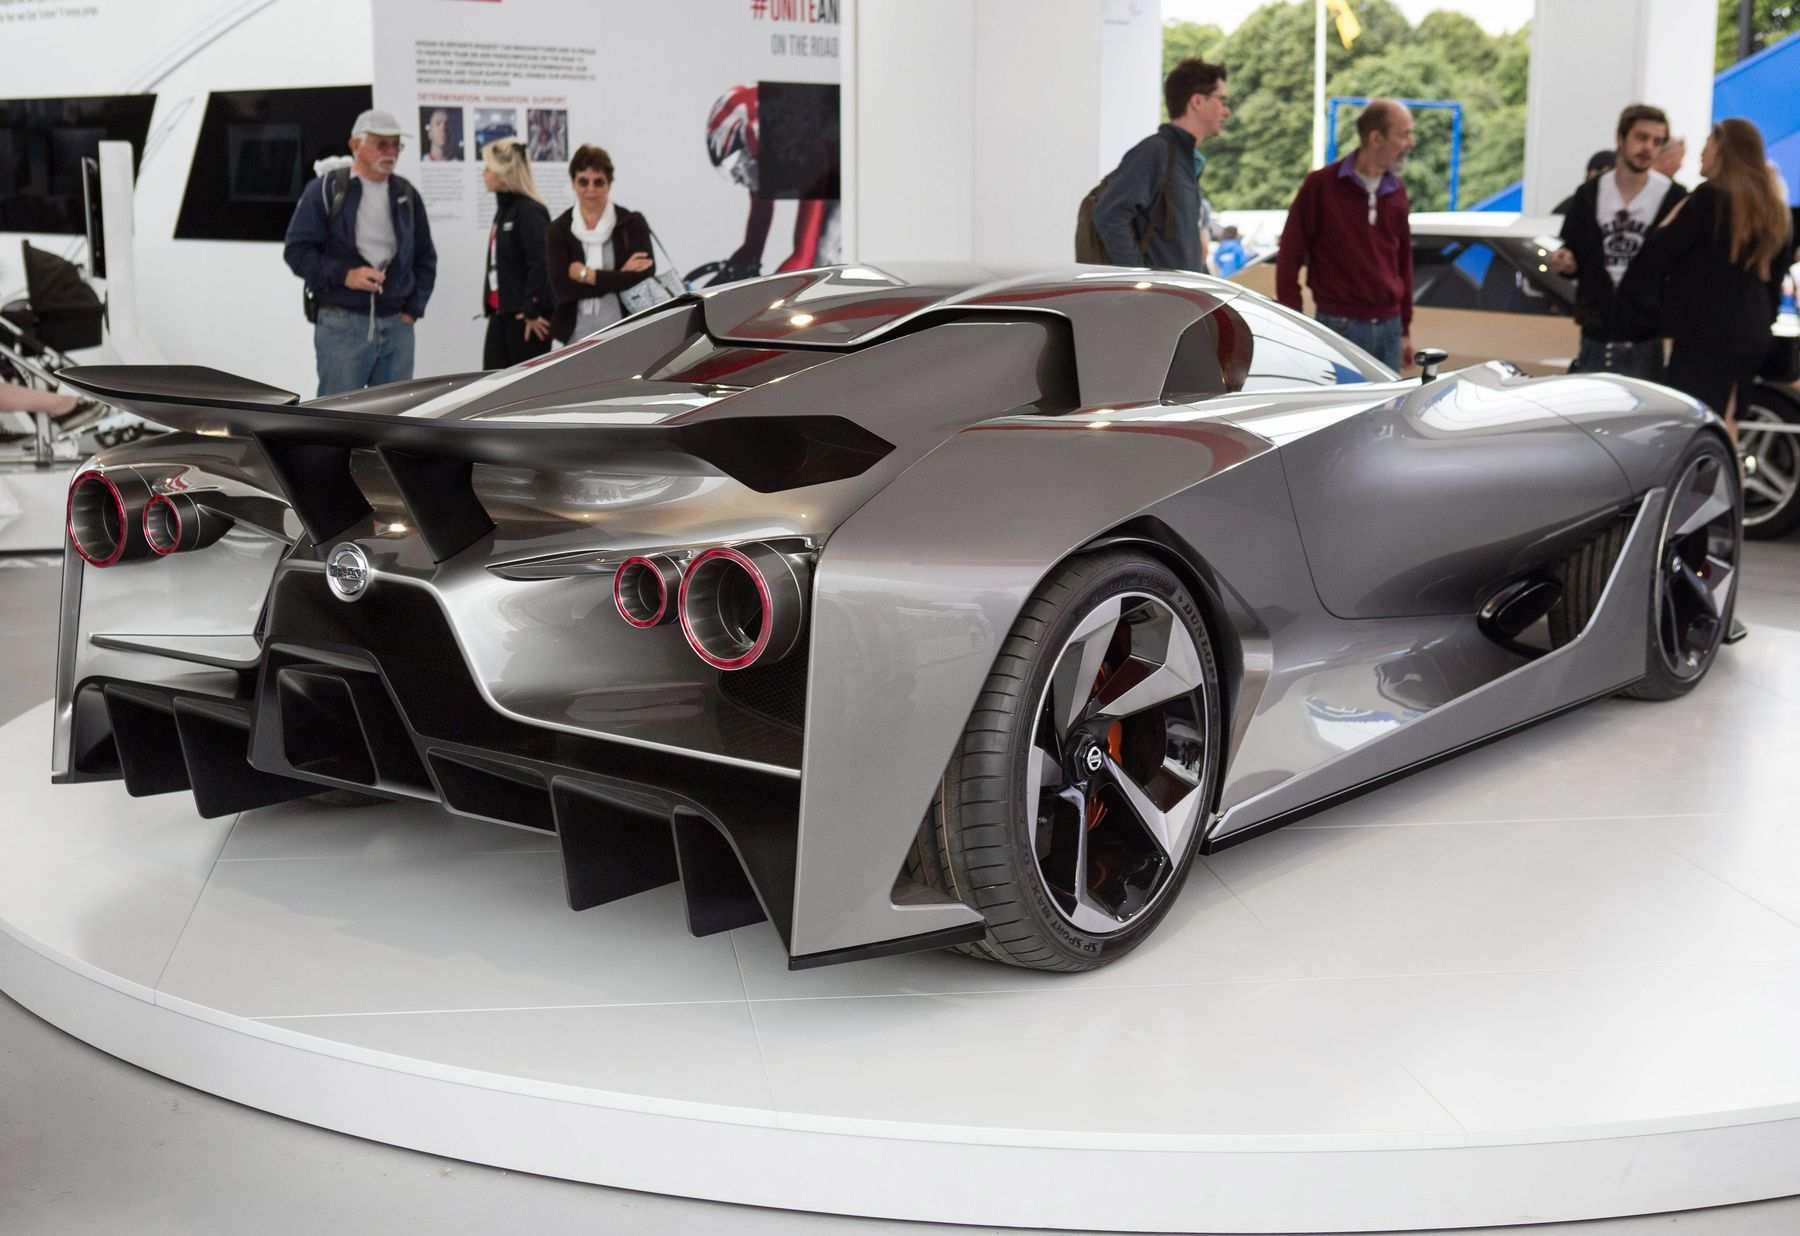 92 Great Nissan 2020 Electric Car Specs and Review for Nissan 2020 Electric Car